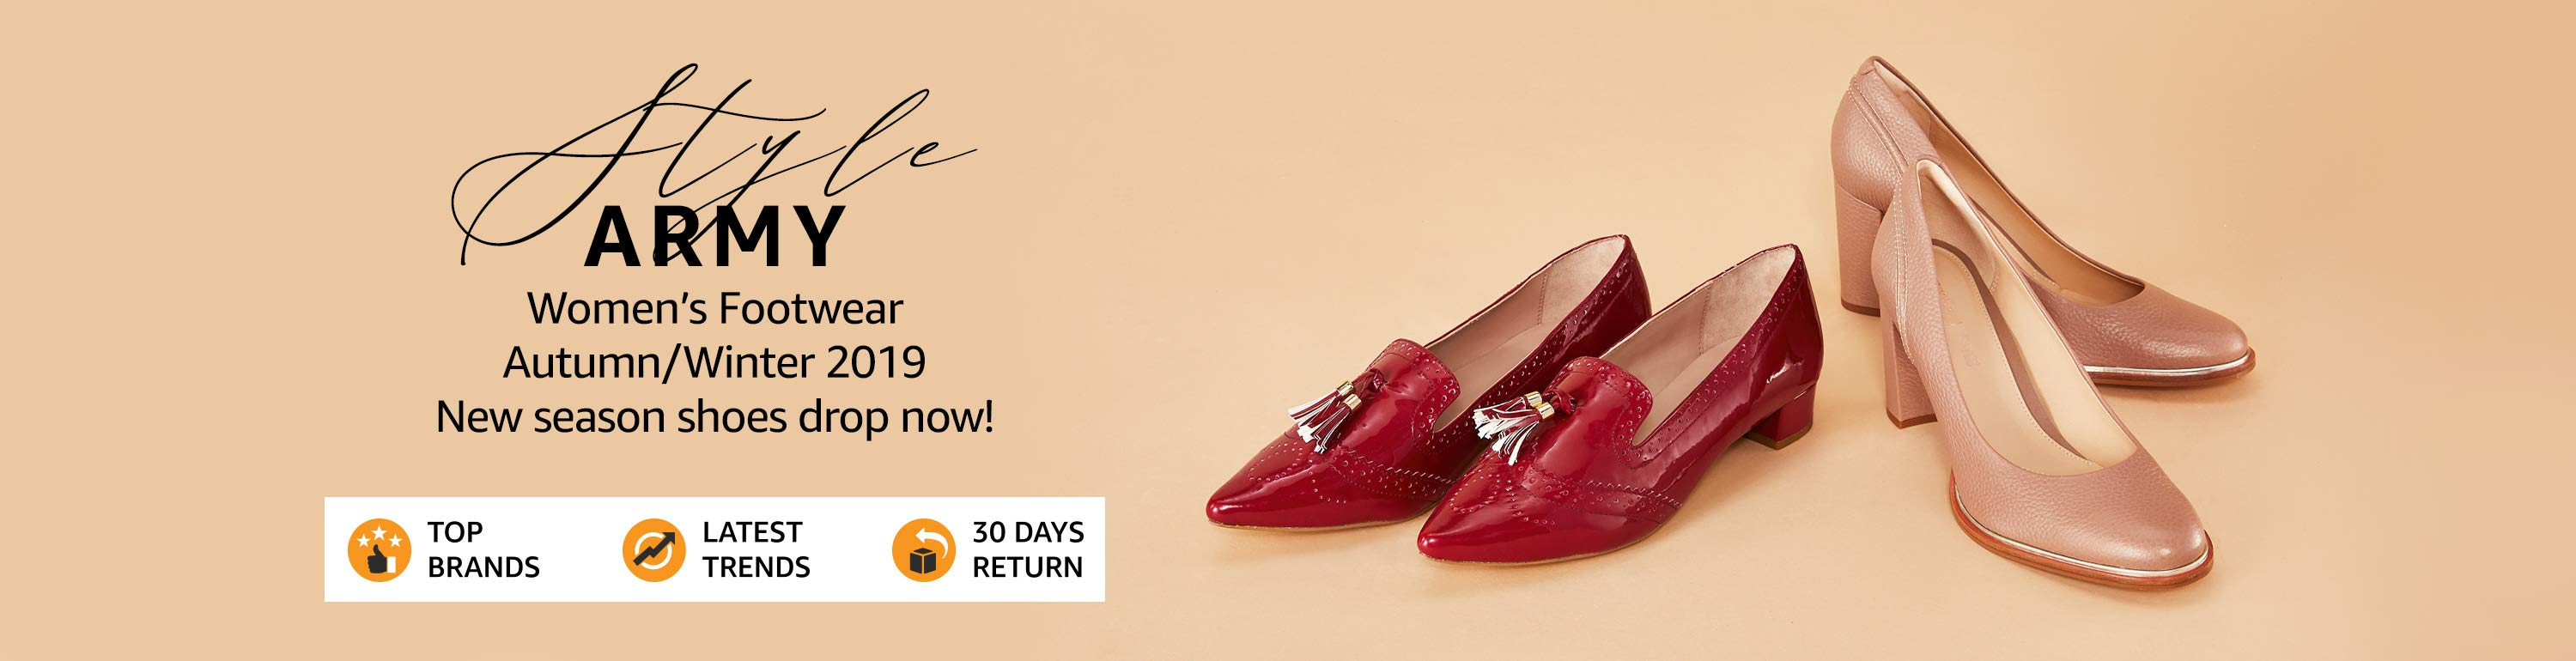 Great Indian Festival: Upto 80% Off on Women's Footwear + Extra 10% Off on SBI Bank Debit & Credit Cards (29th Sept - 4th Oct)